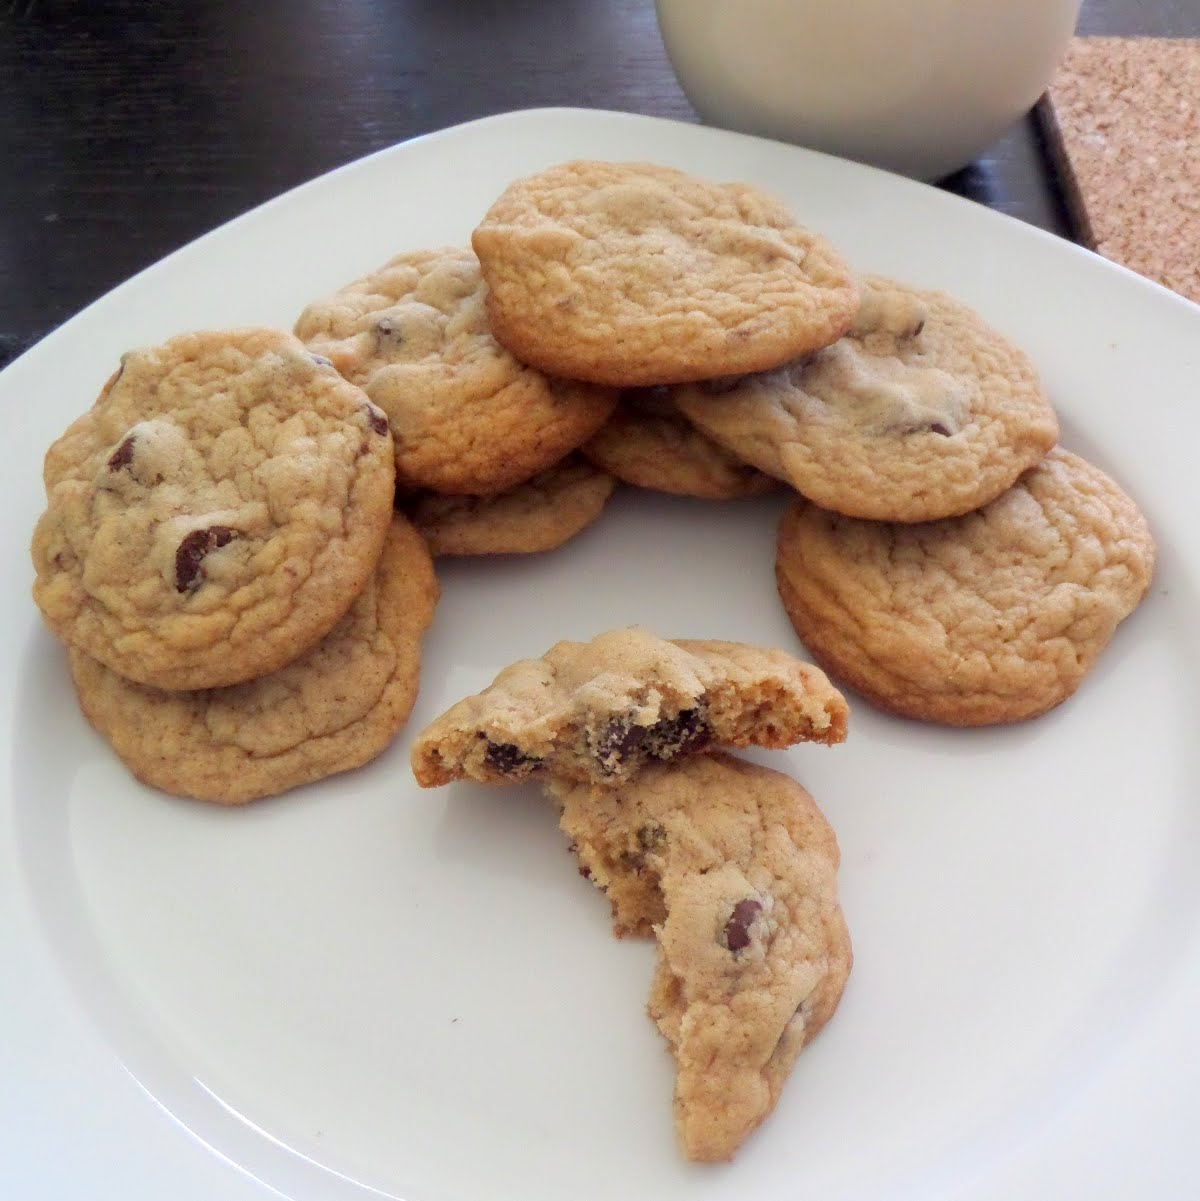 Chocolate Chip Cookies:  soft and chewy cookies studded with semisweet chocolate chips.